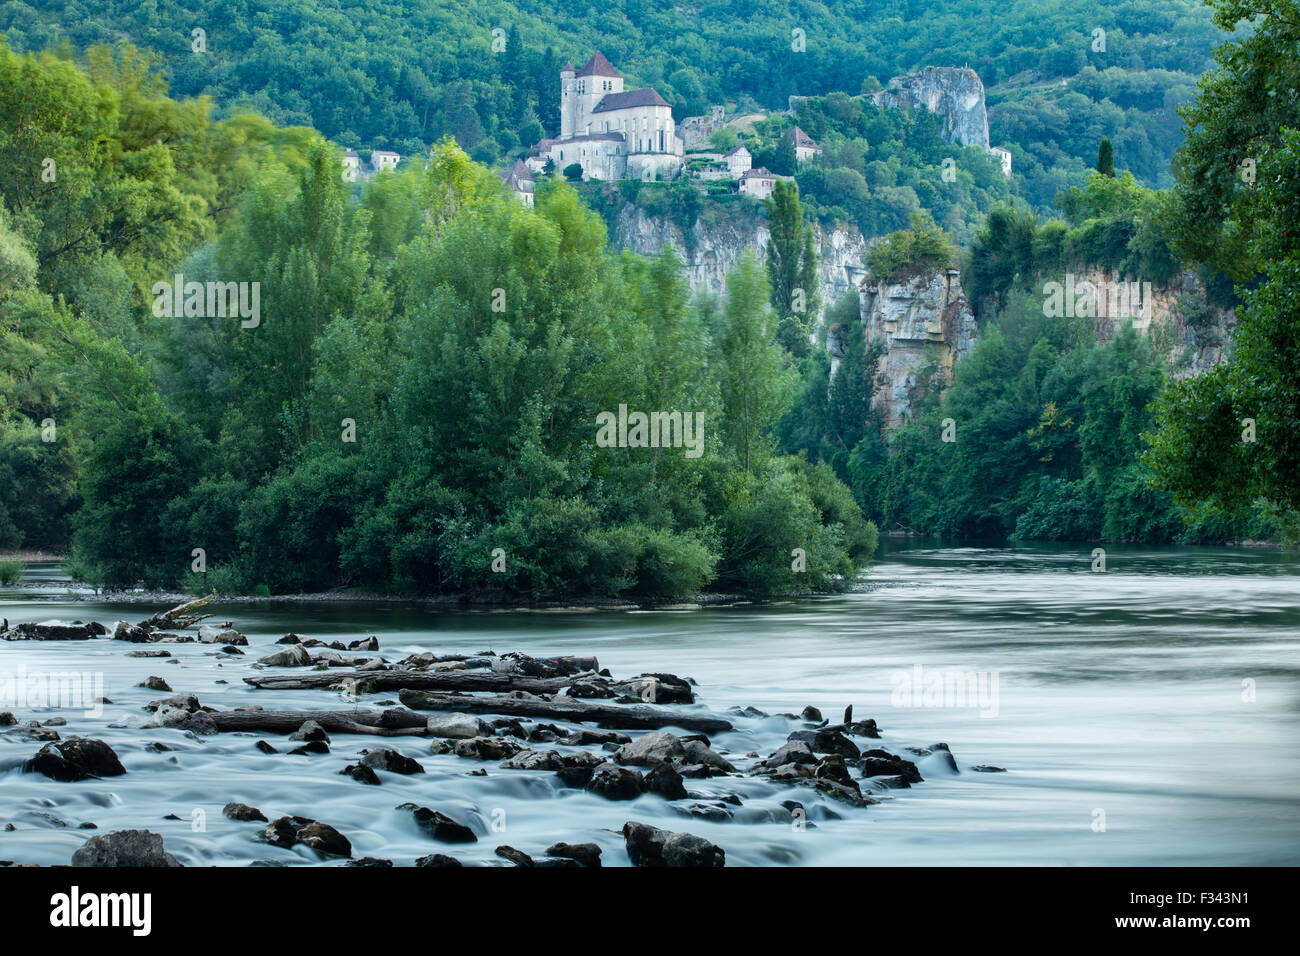 La rivière du Lot à St Cirque Lapopie, Quercy, France Photo Stock